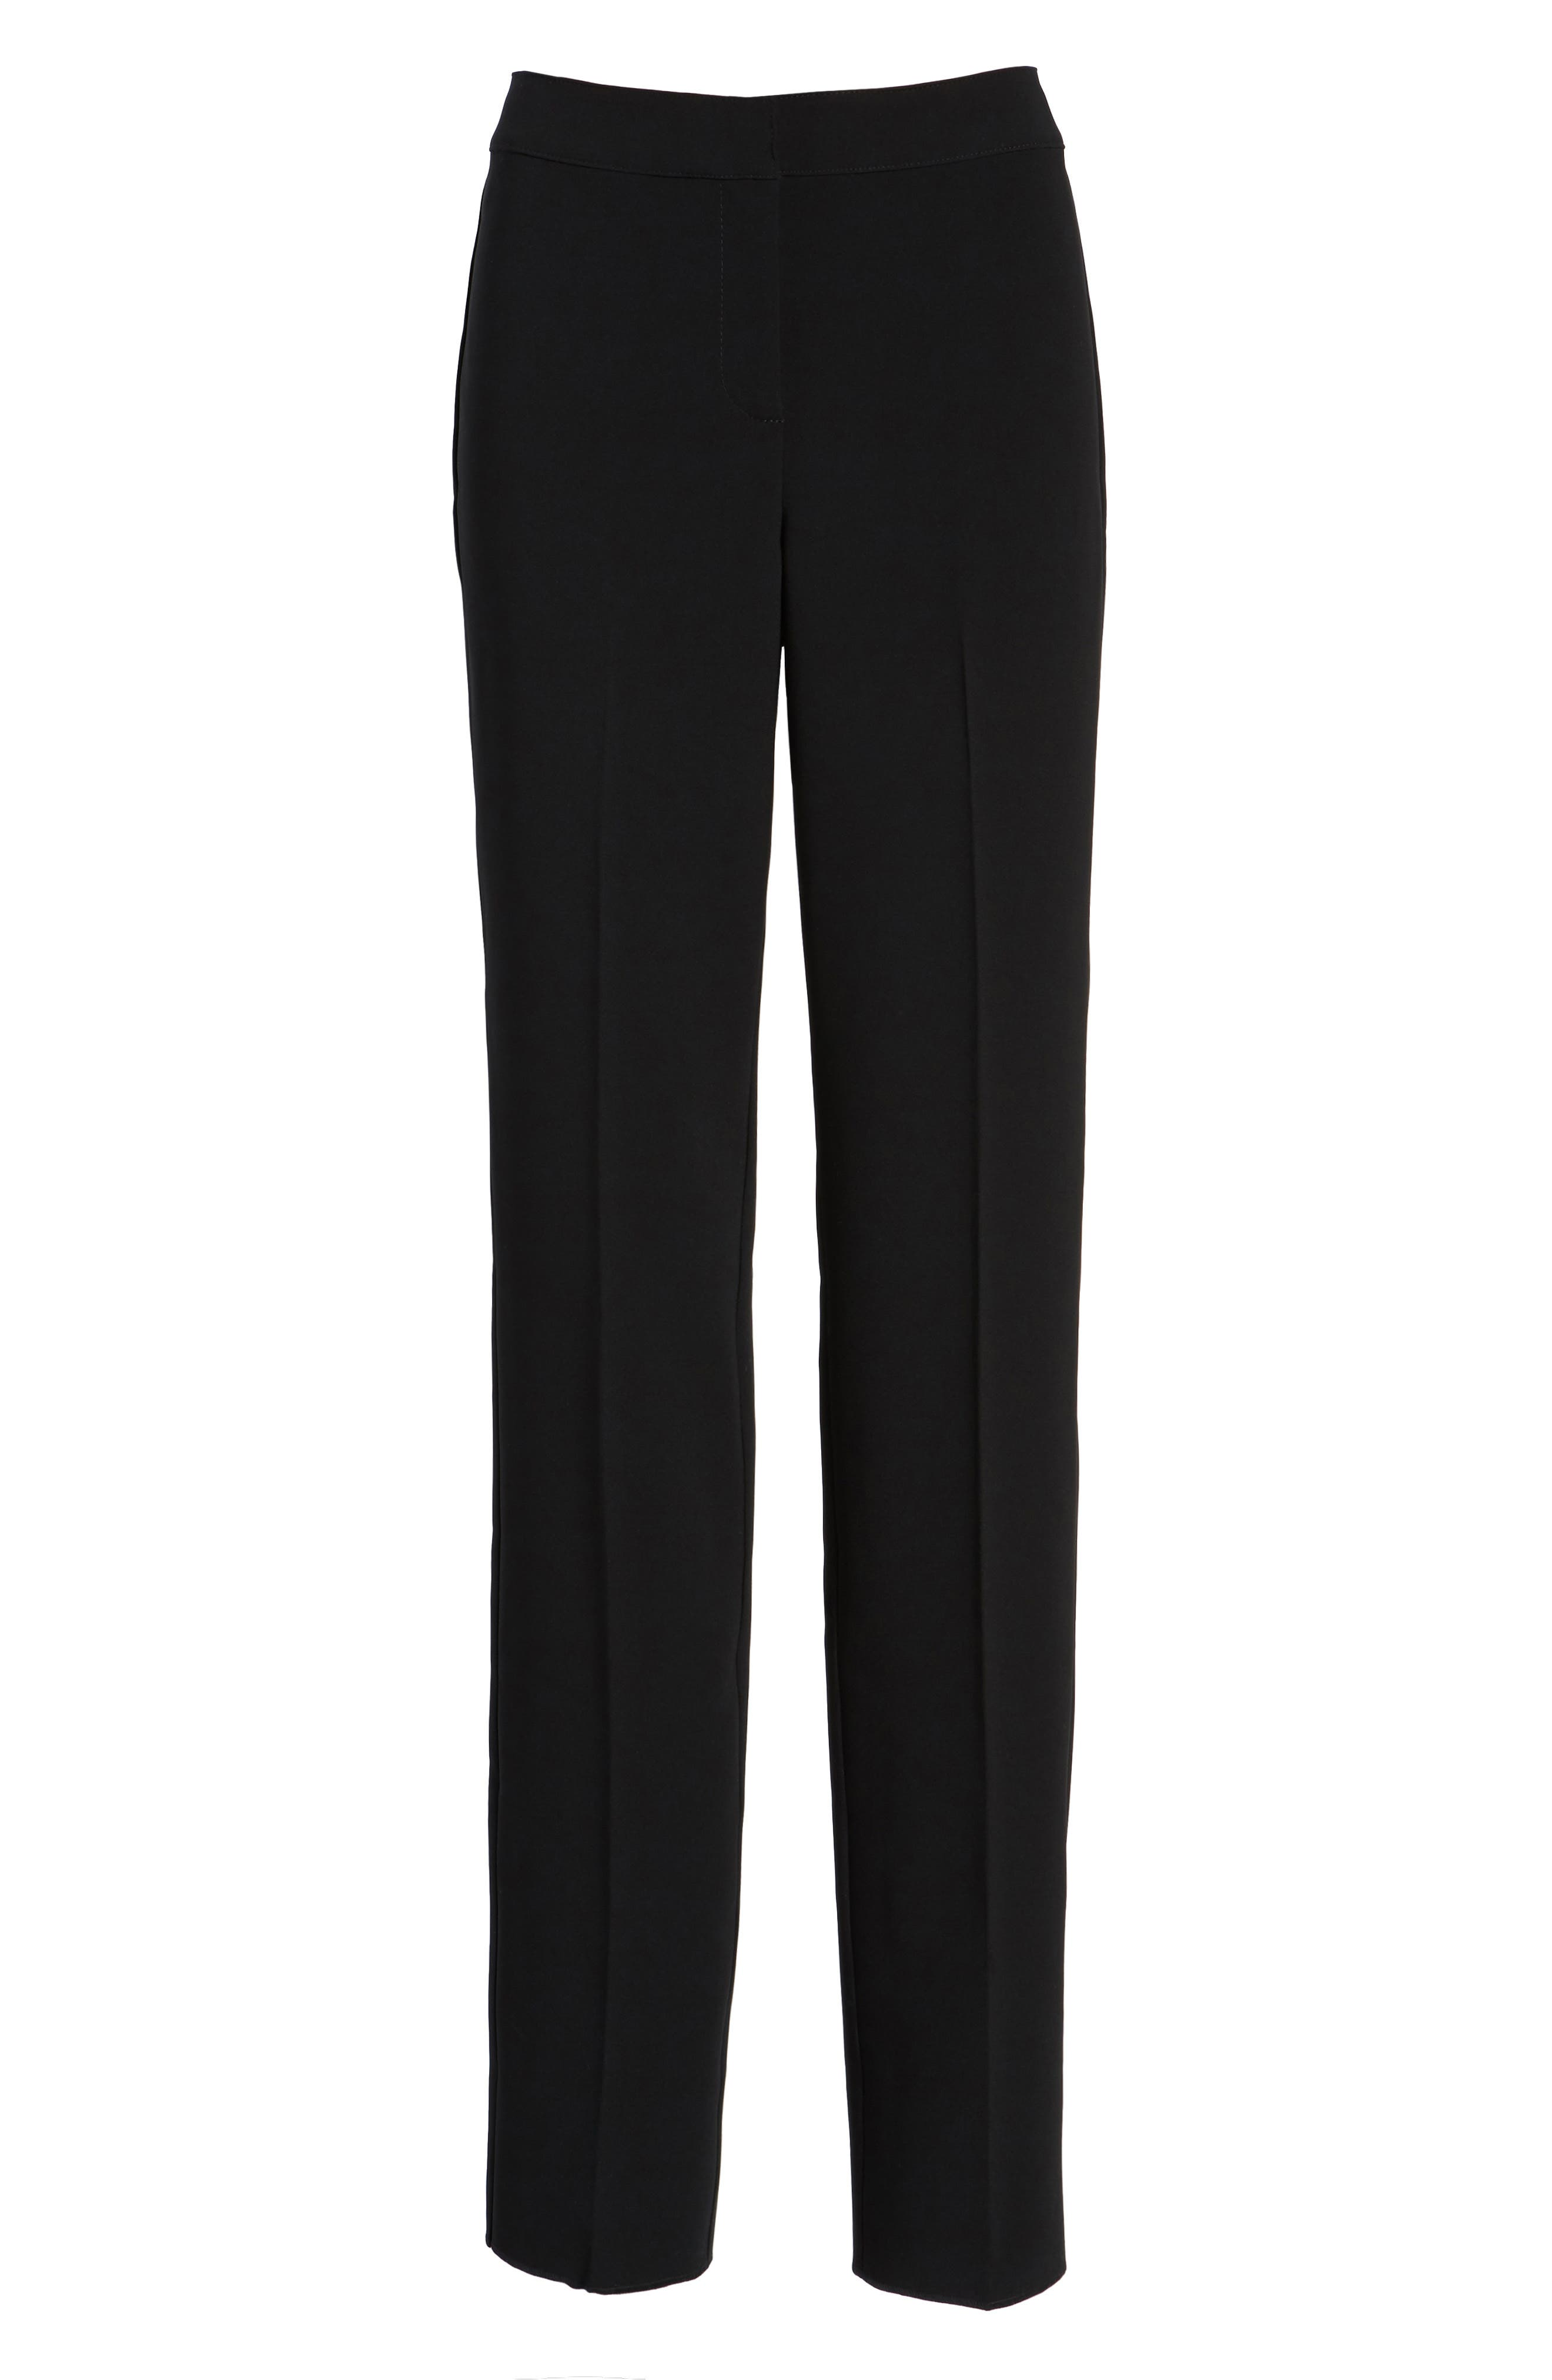 ST. JOHN COLLECTION Diana Straight Leg Crepe Marocain Pants, Main, color, CAVIAR